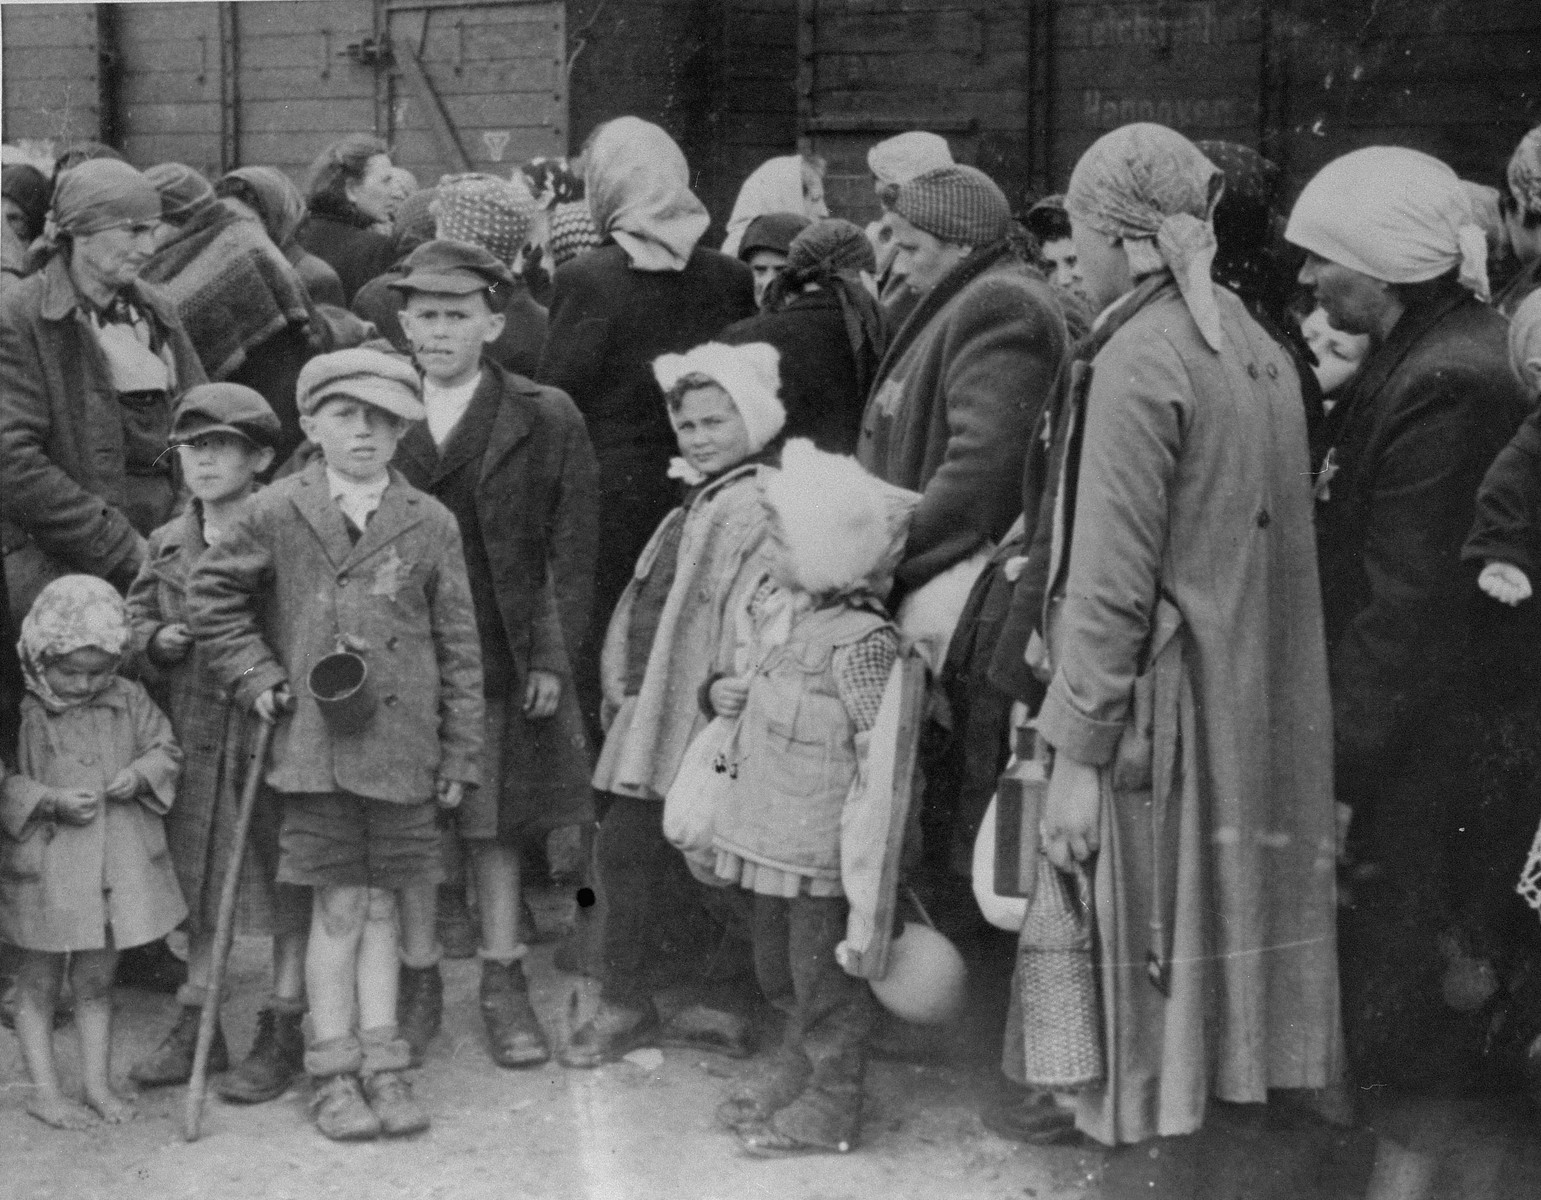 Jewish women and children from Subcarpathian Rus await selection on the ramp at Auschwitz-Birkenau.  Lili Jacob's has identified aunt Tauba with her four children.  The woman in the center with the two girls wearing rabbit fur hats have been identified as either Bozsi Iskovics Engel (b. 1904) from Beregszasz with her two daughters Agota Engel (b. 1933) and Judith Engel (b. 1936) or Breine Slomovics with her two daughters.